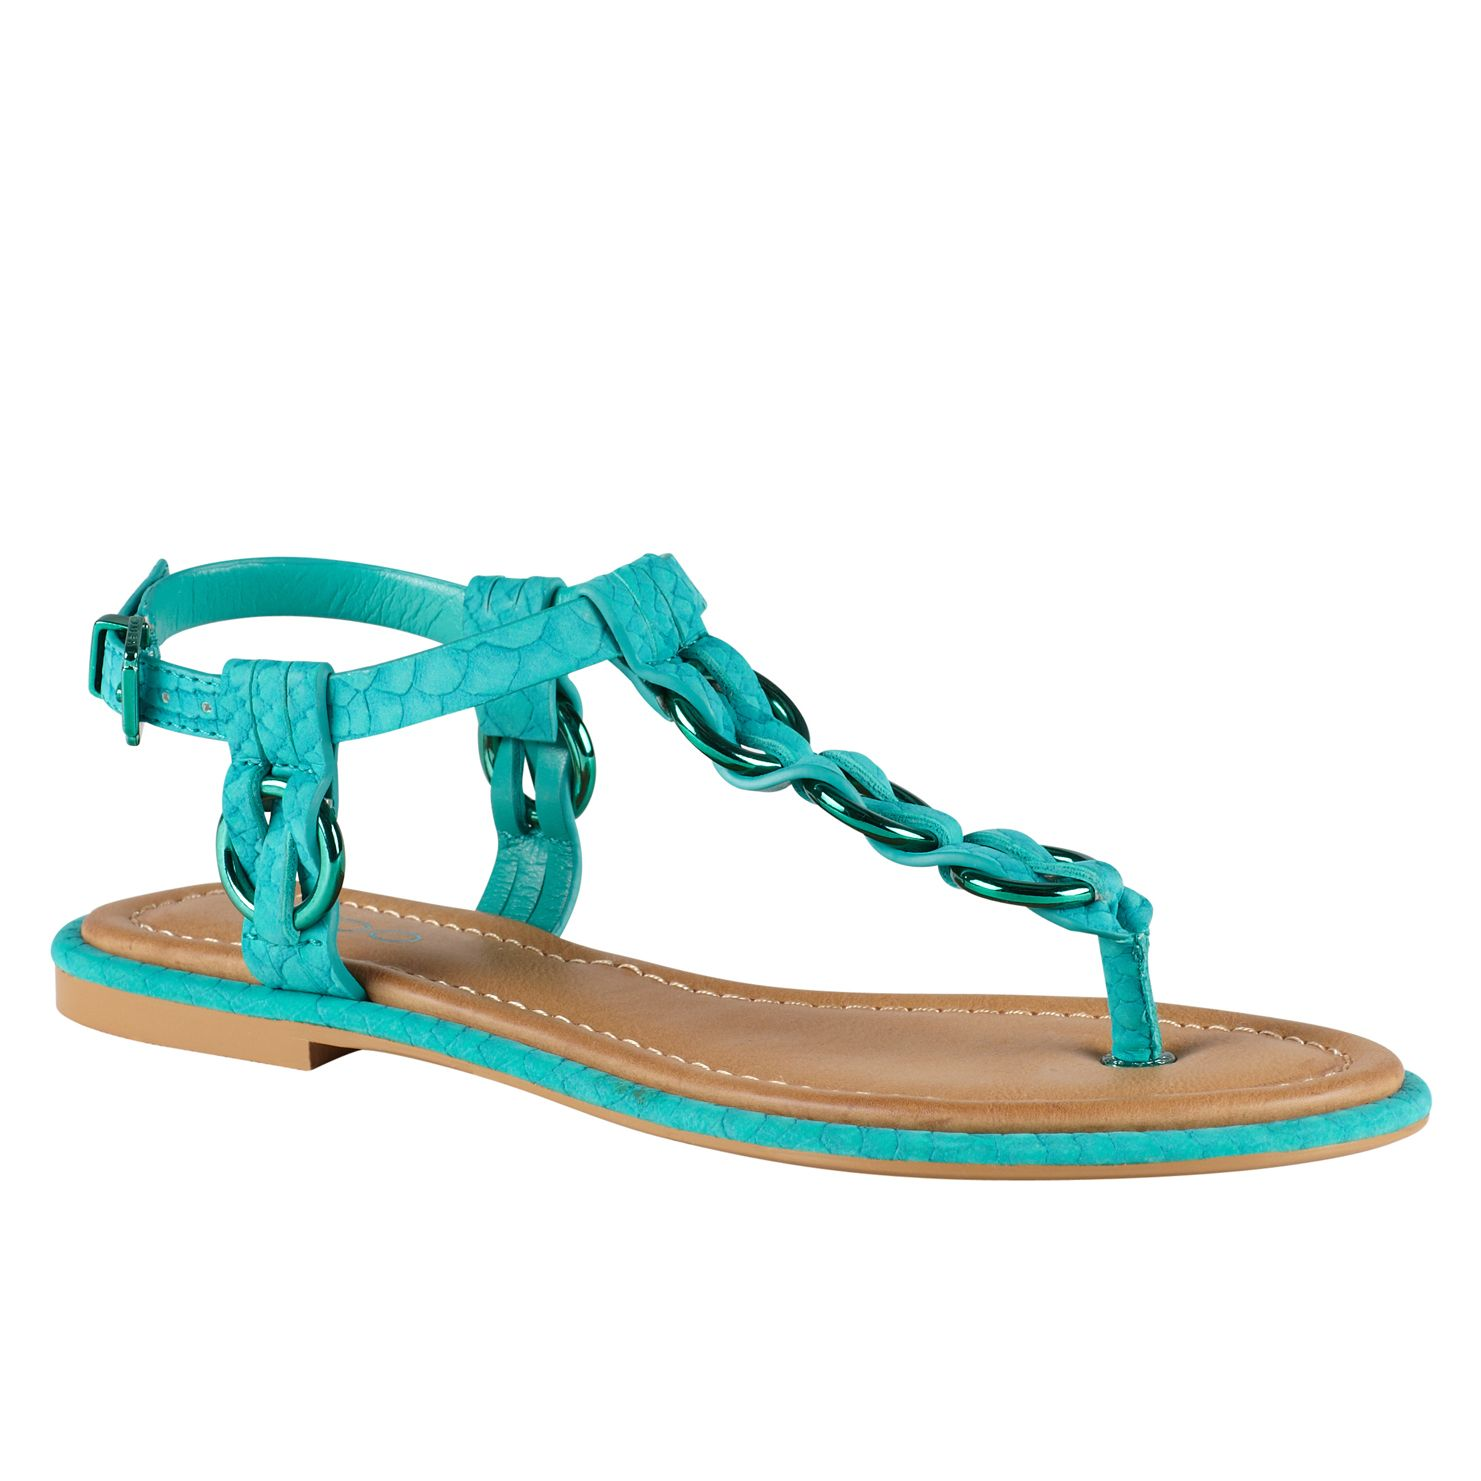 Kivitoo flat t-bar sandals